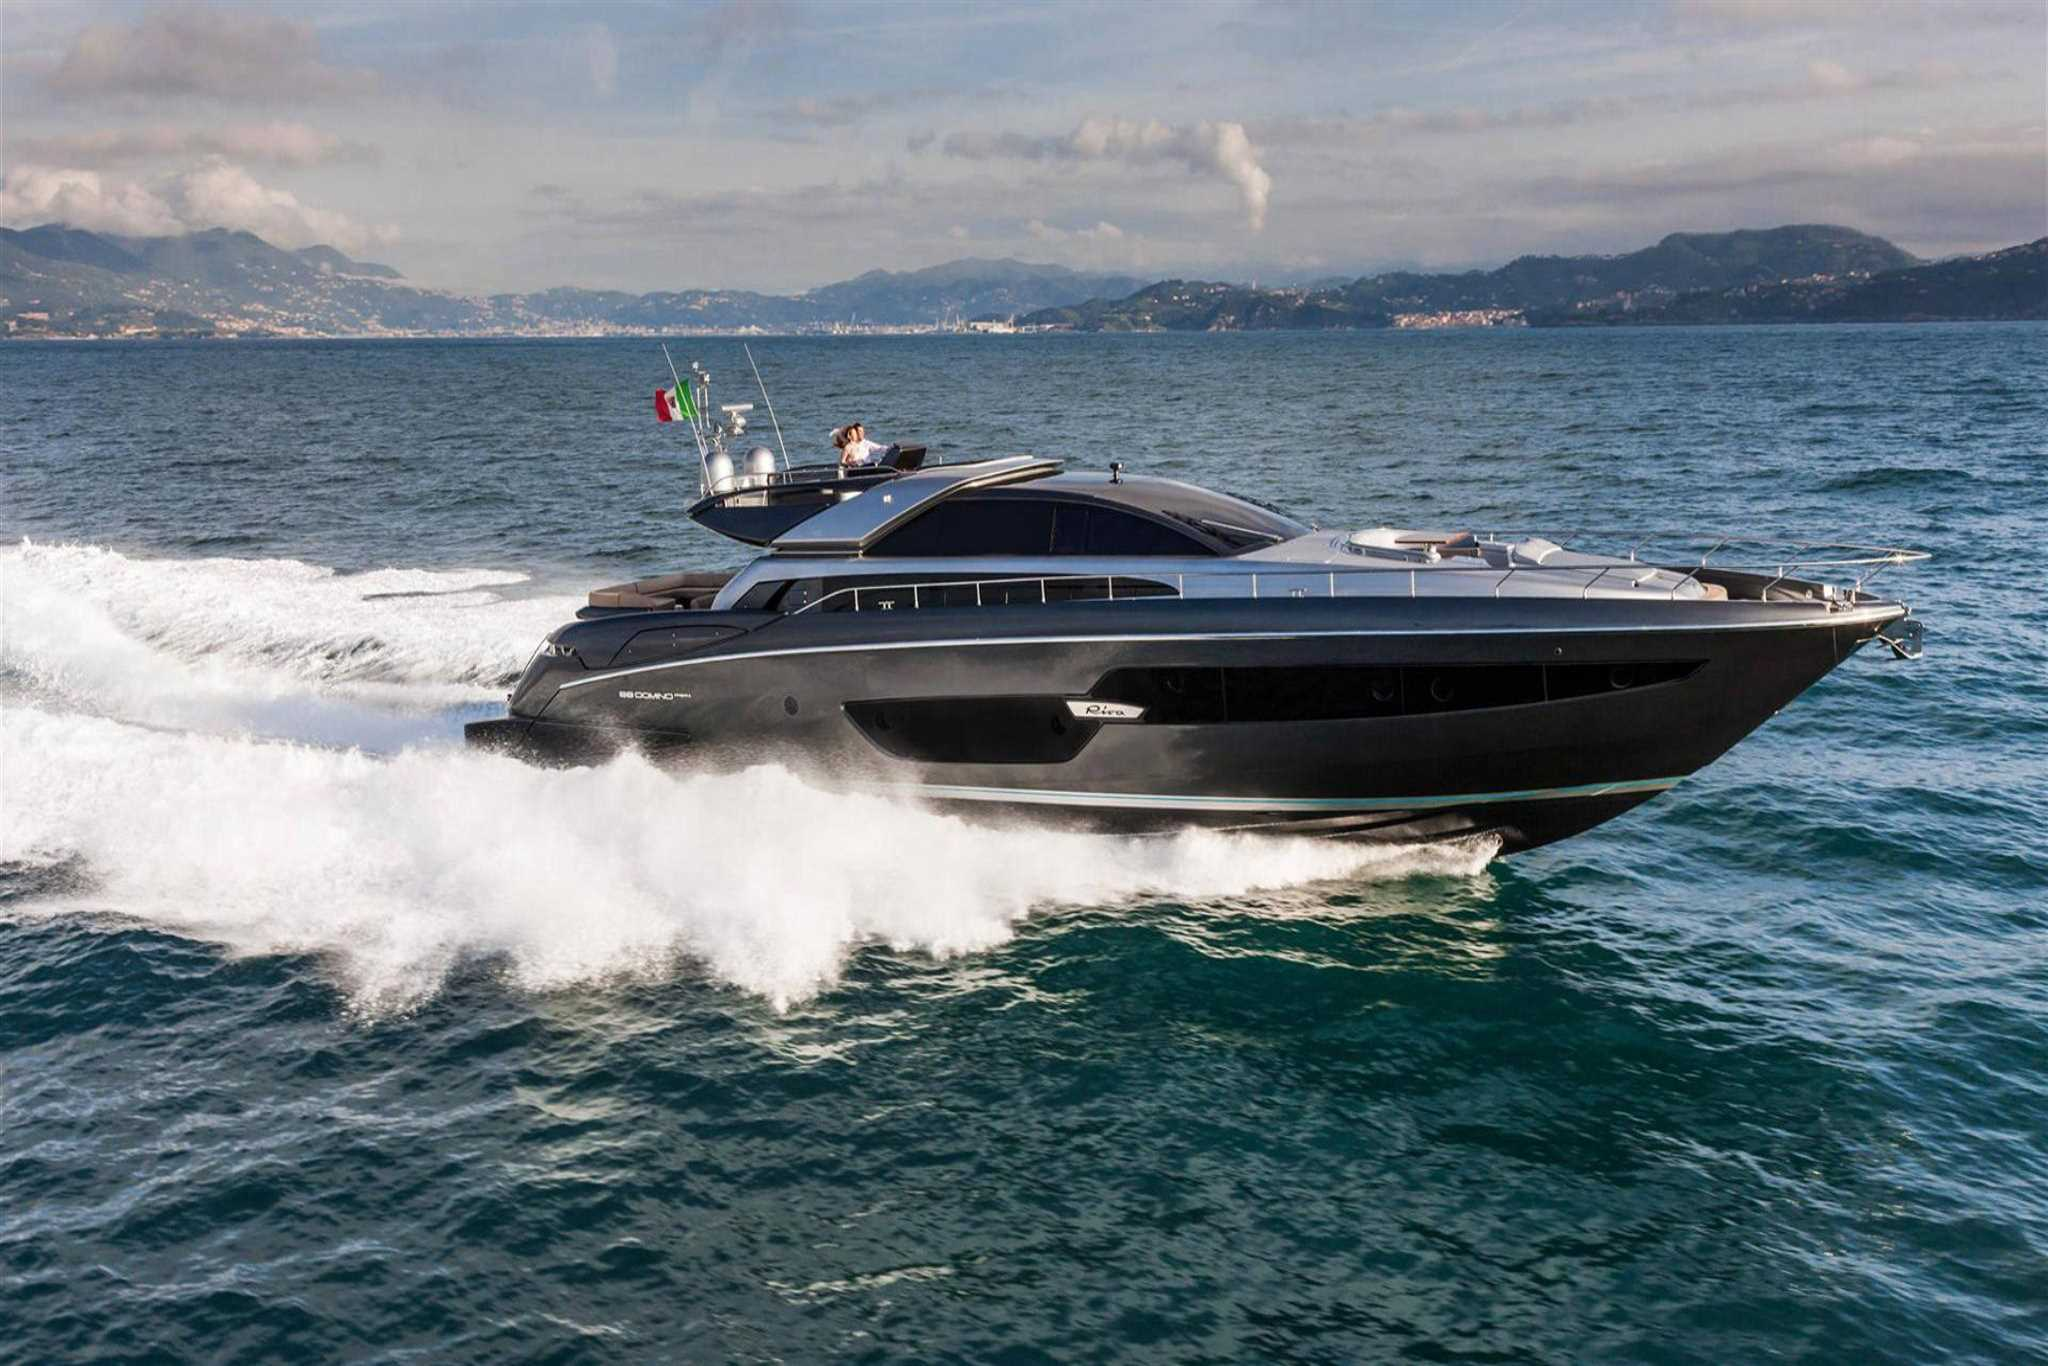 Riva Yacht 86 Domino FOR SALE Located In South Florida Chris Coughlin Yacht Sales